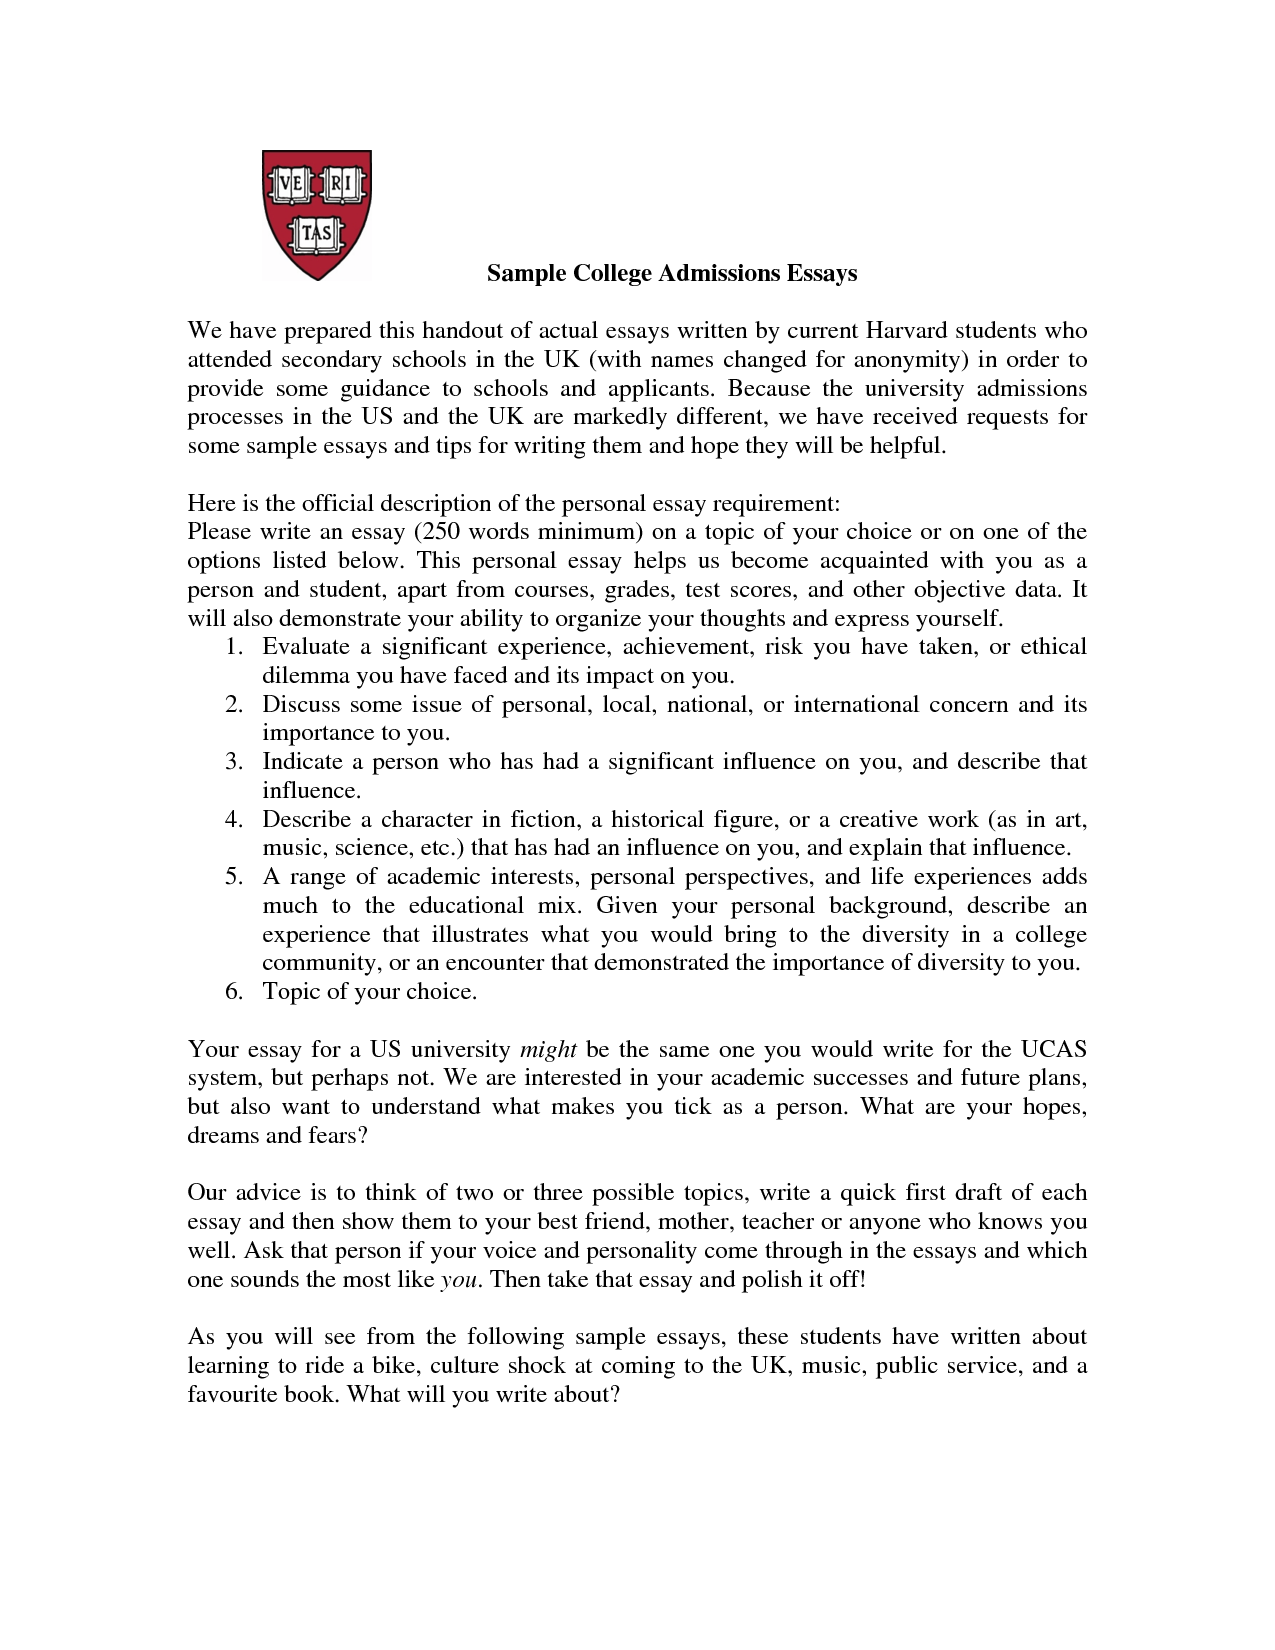 005 Harvard Acceptance Essays Essay Example Frightening Common App That Worked Mba Accepted Admission 2018 Full